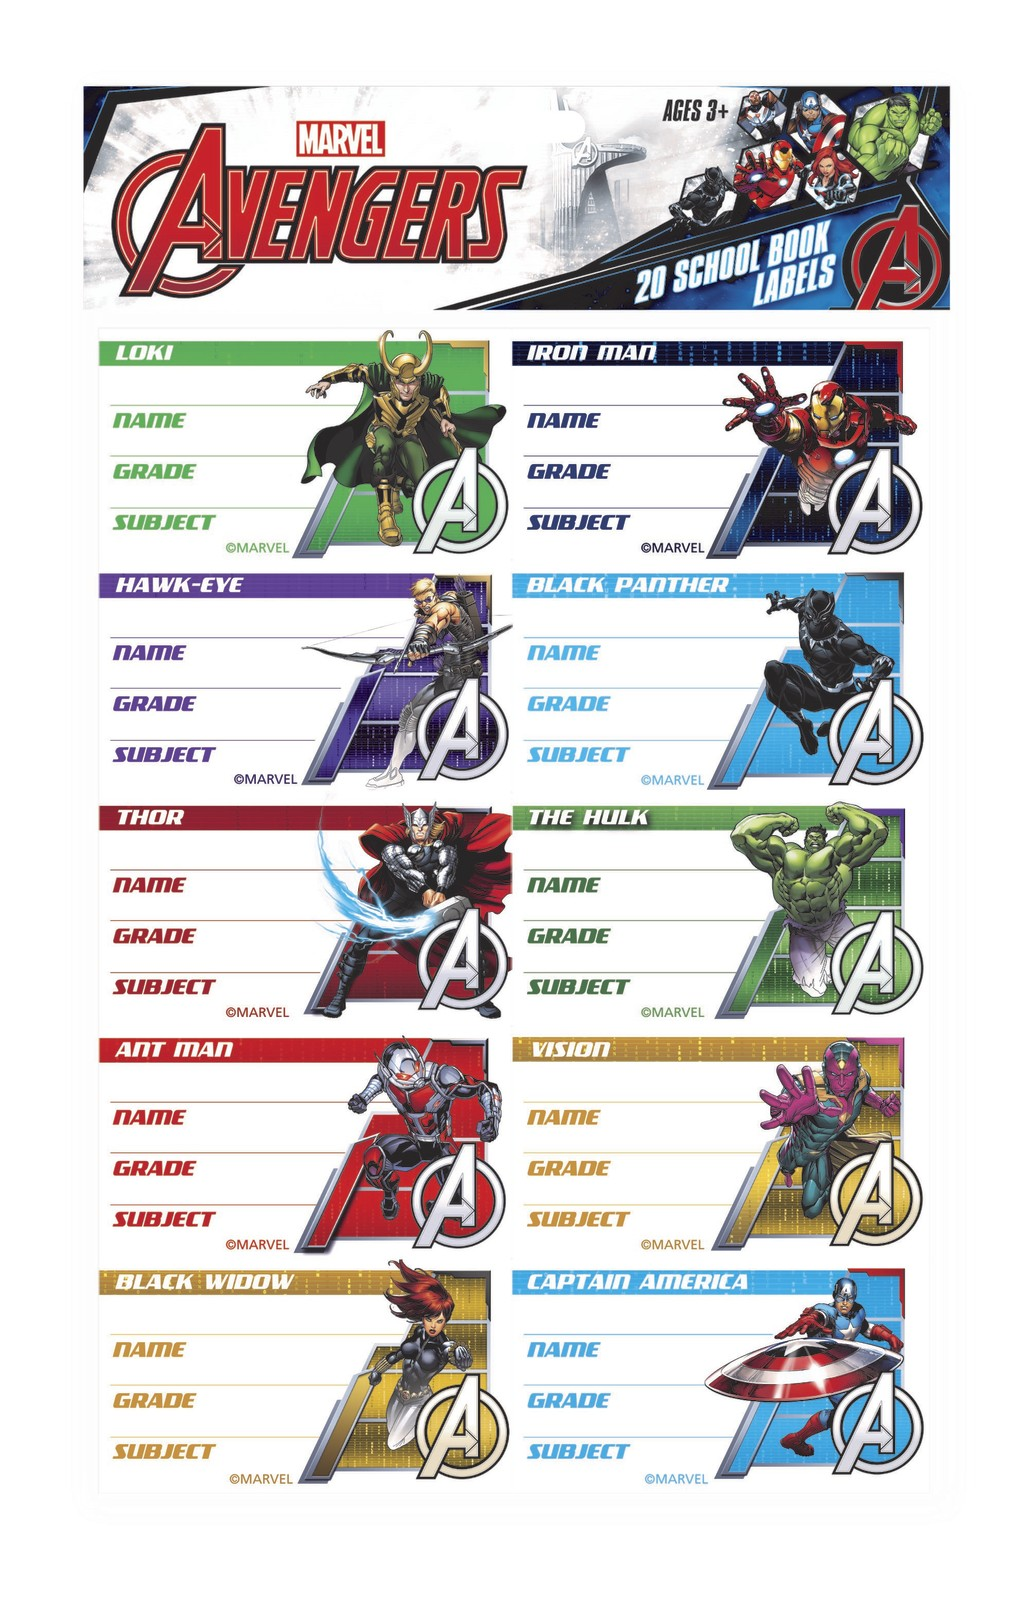 Marvel Avengers Book Labels image